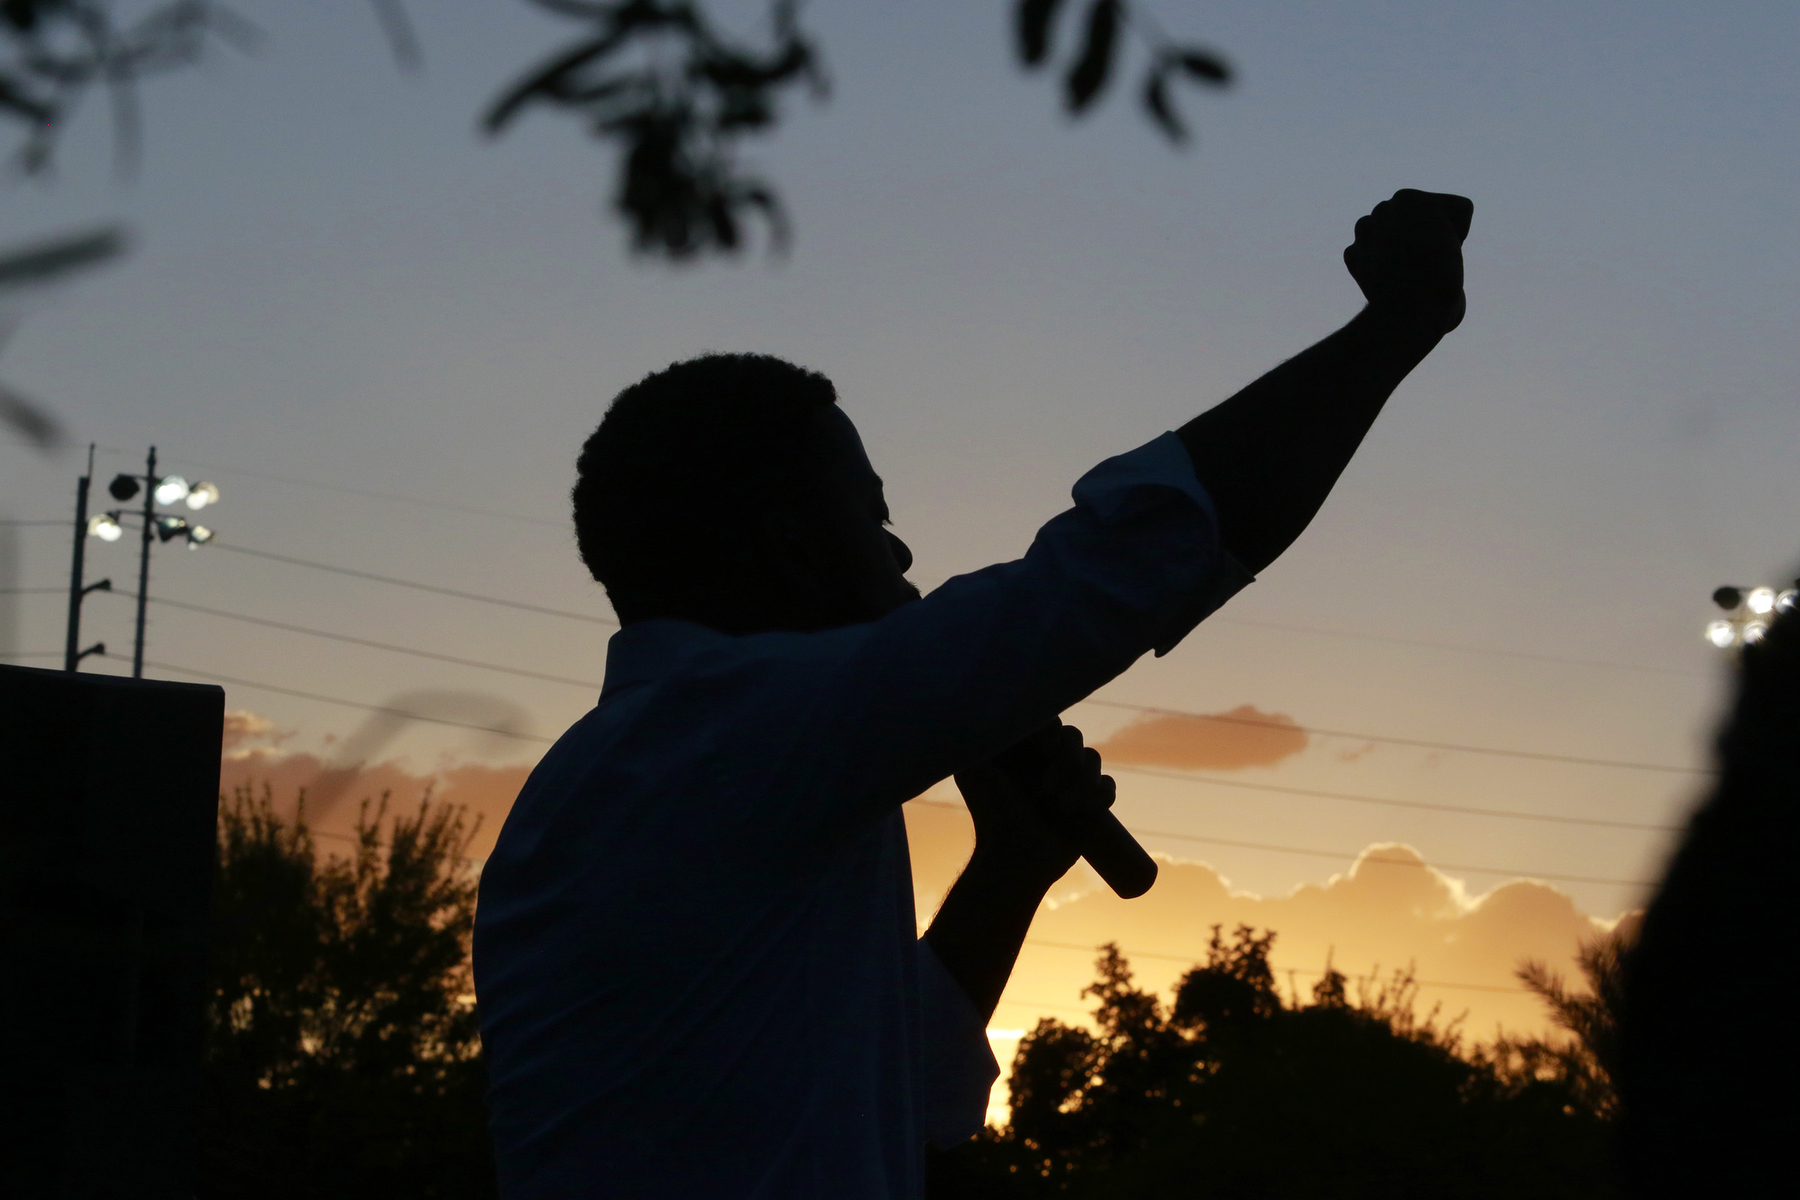 Assemblyman William McCurdy, D-Nev., is silhouetted while speaking at a rally in Las Vegas in response to the May 25 death of George Floyd, who died after being restrained by Minneapolis police.